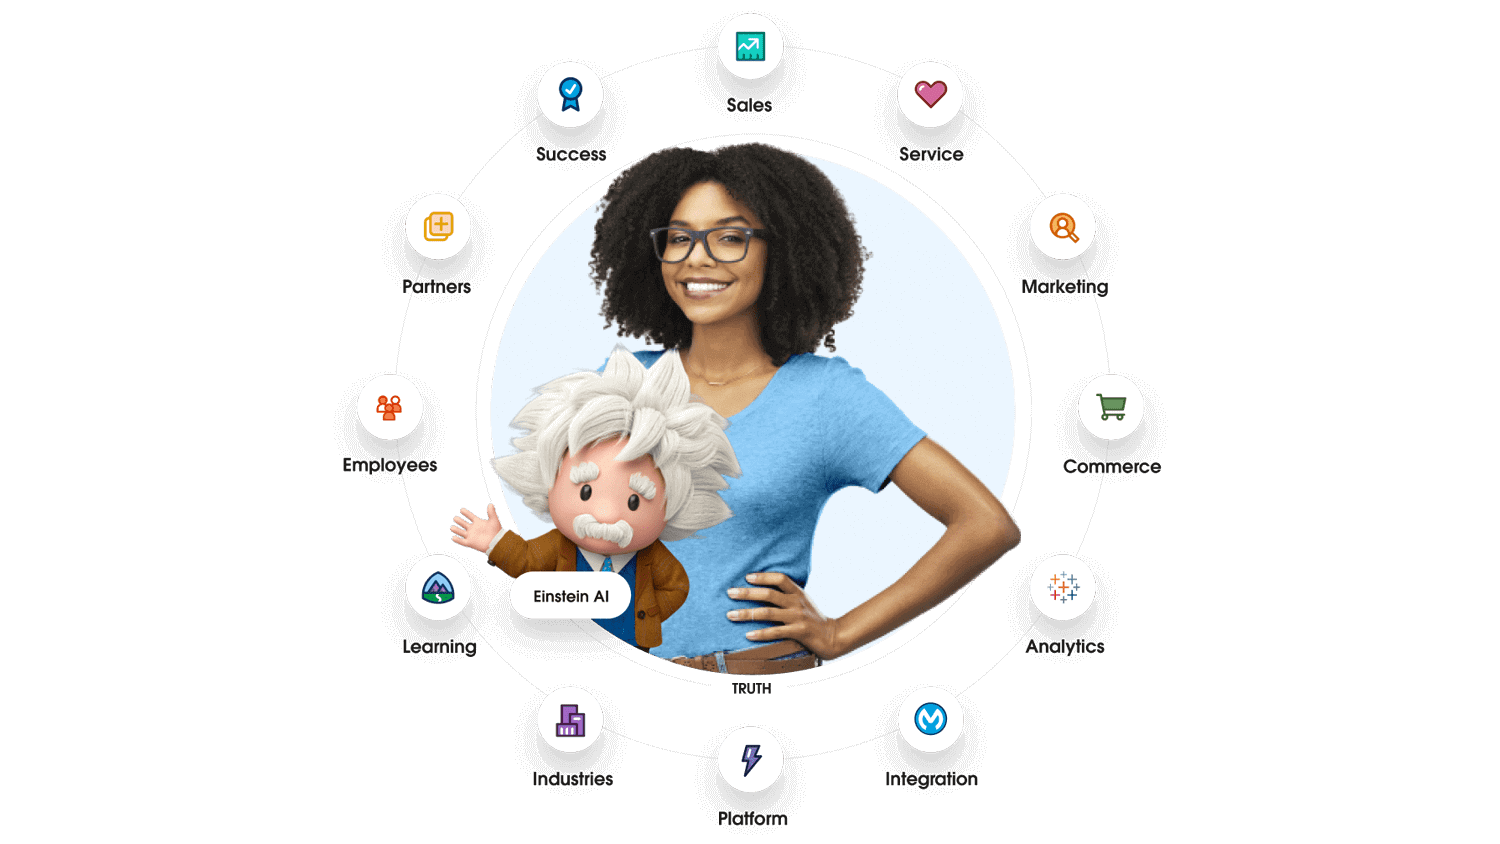 What Can Salesforce Do For Nonprofits?